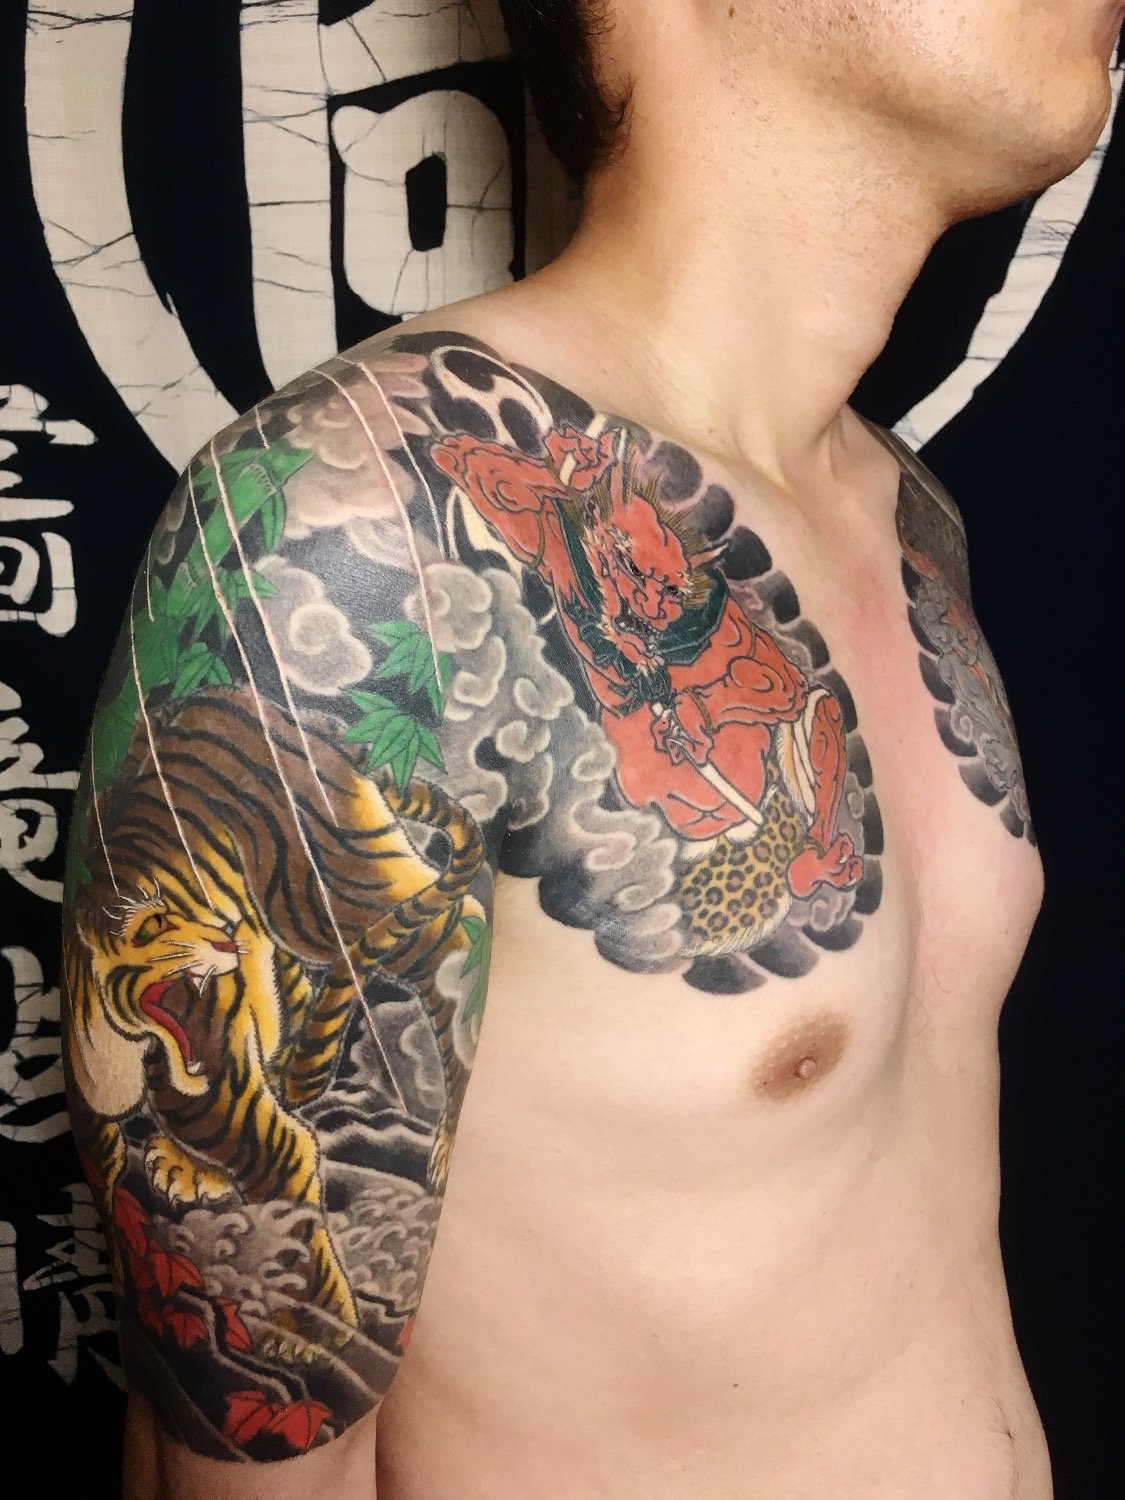 Raijin with Tora 雷神と虎